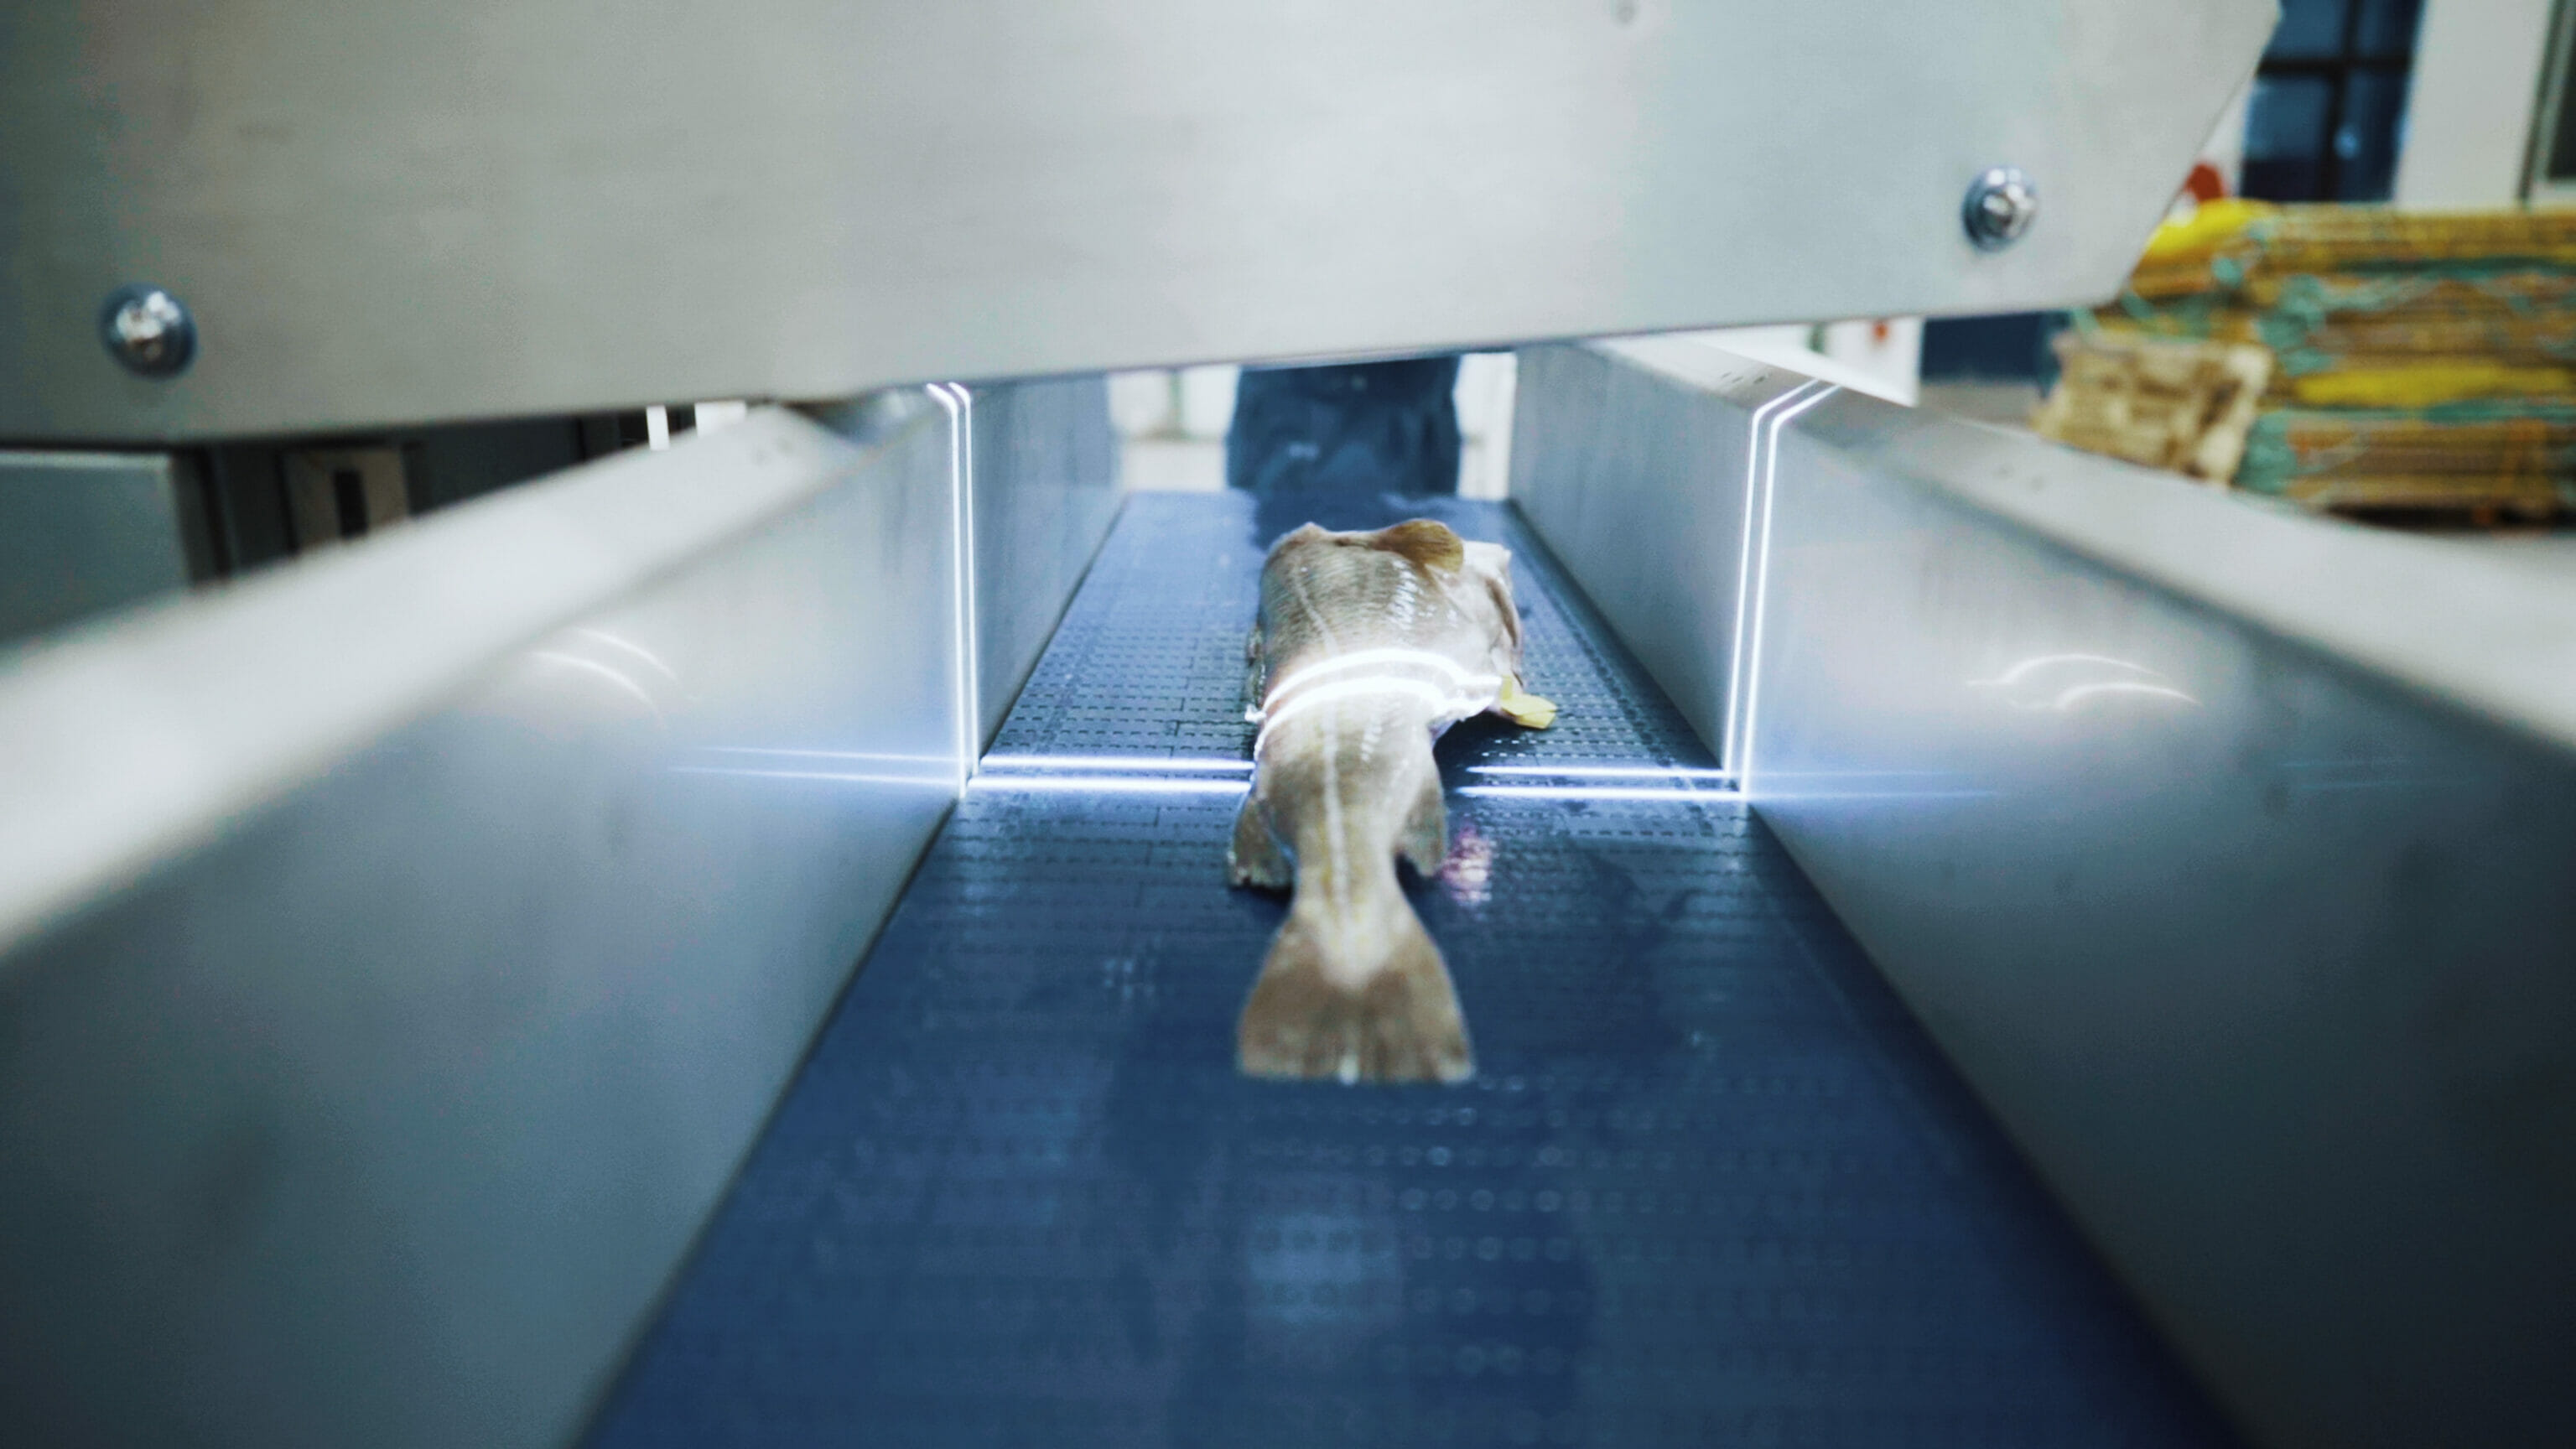 Maritech Eye - Quality scanning and species recognition of cod, salmon and other white and red fish in industrial speed.